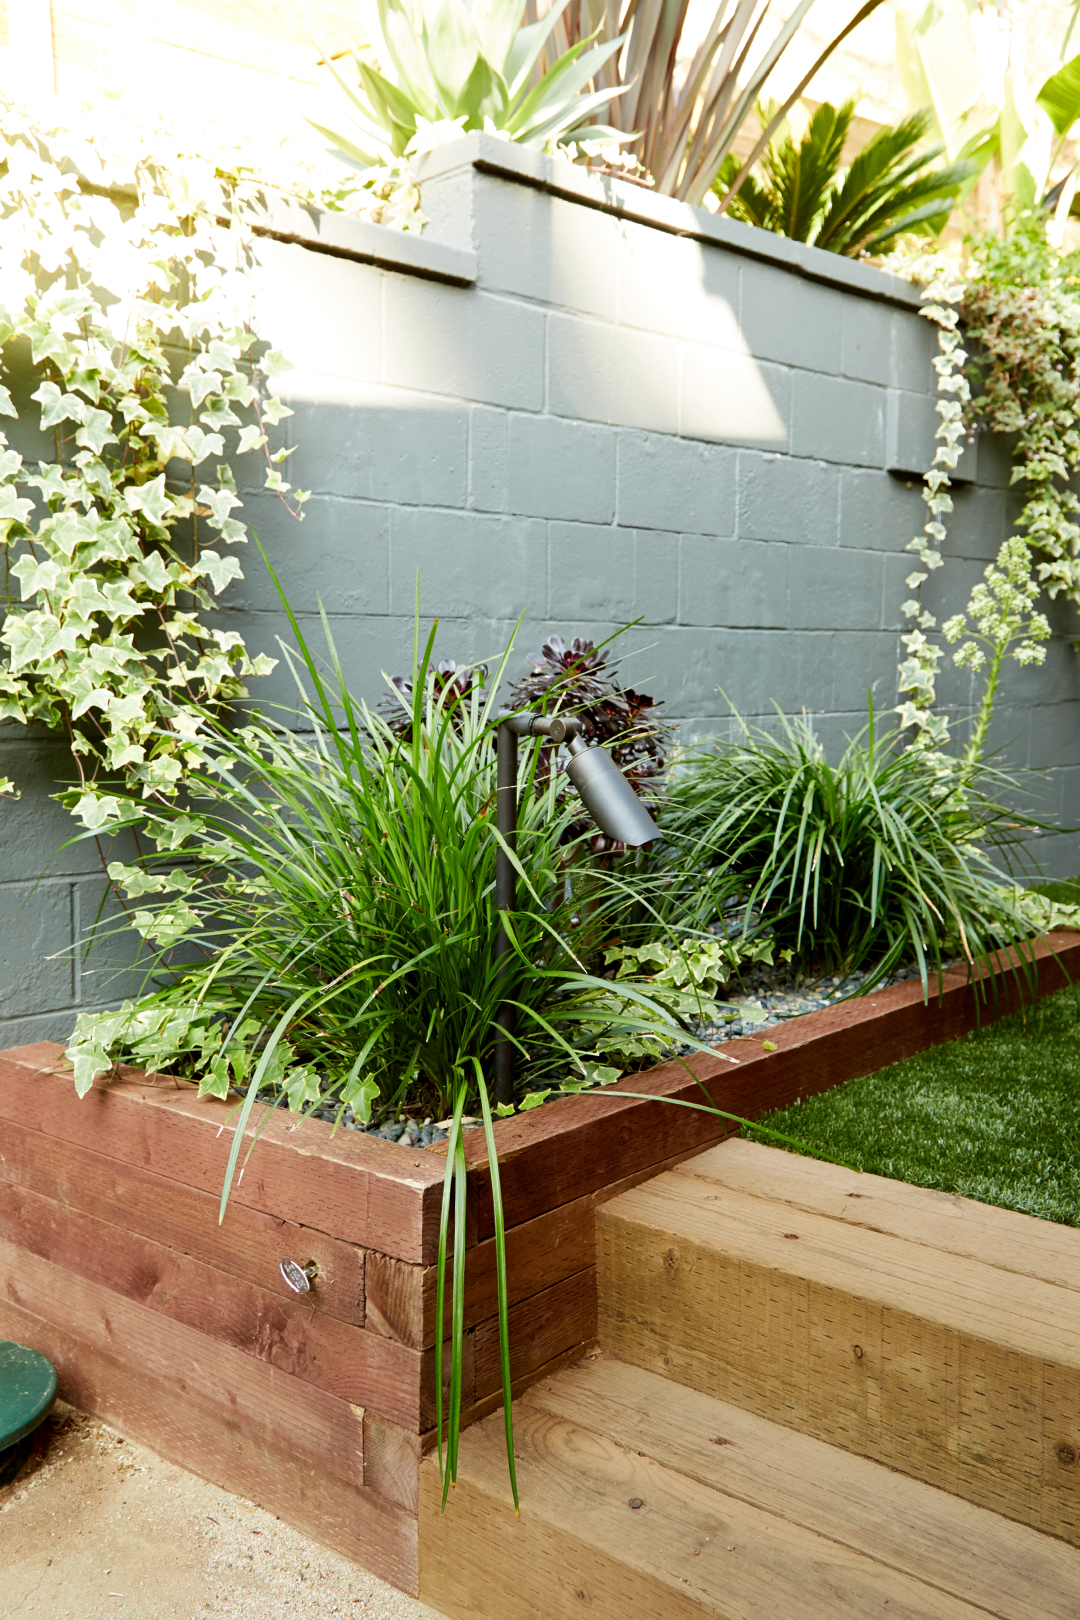 timber steps in backyard landscaping with various plants and gray wall